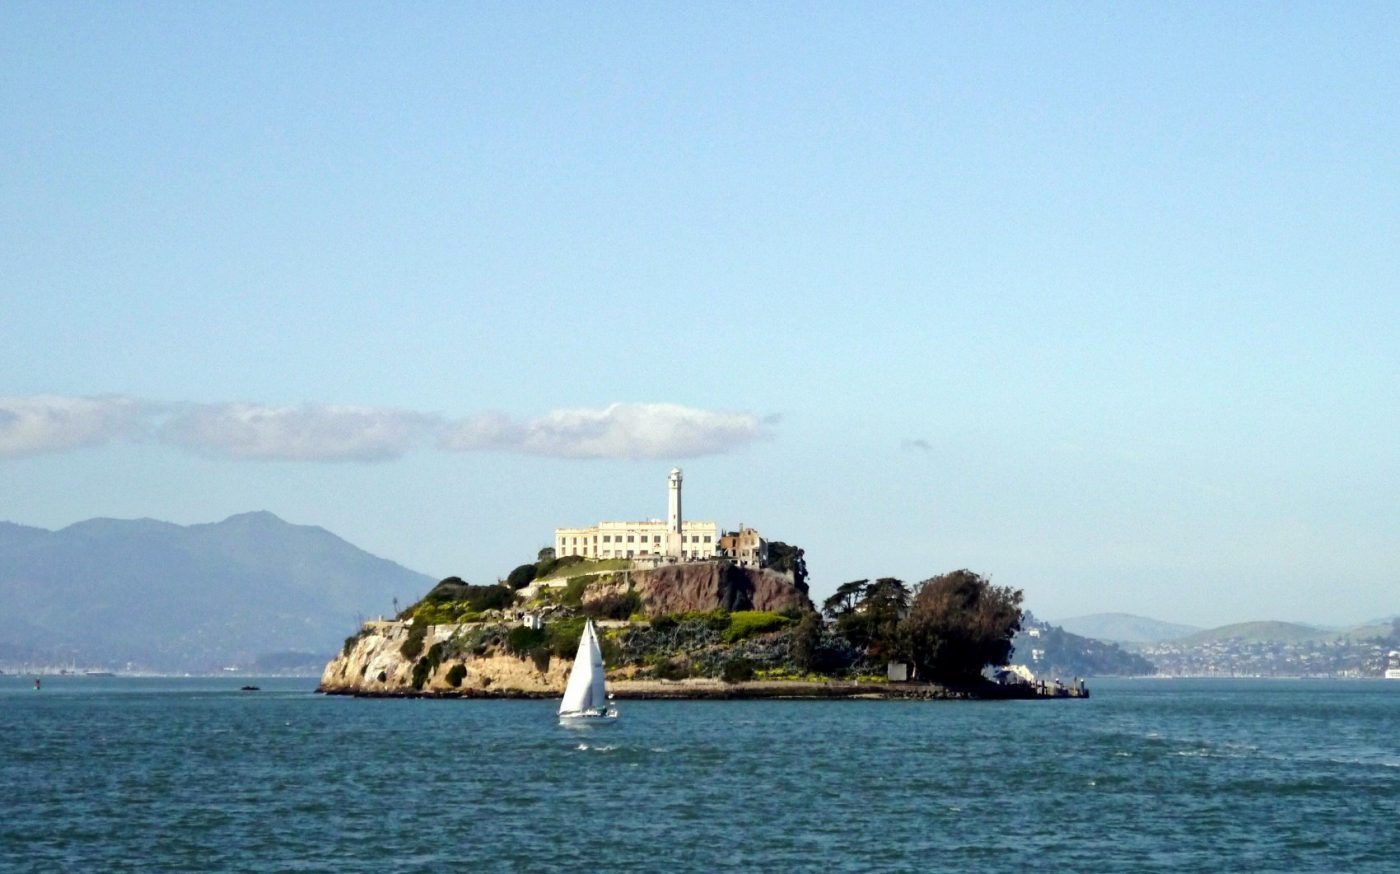 view of alcatraz island during daytime with sail boat